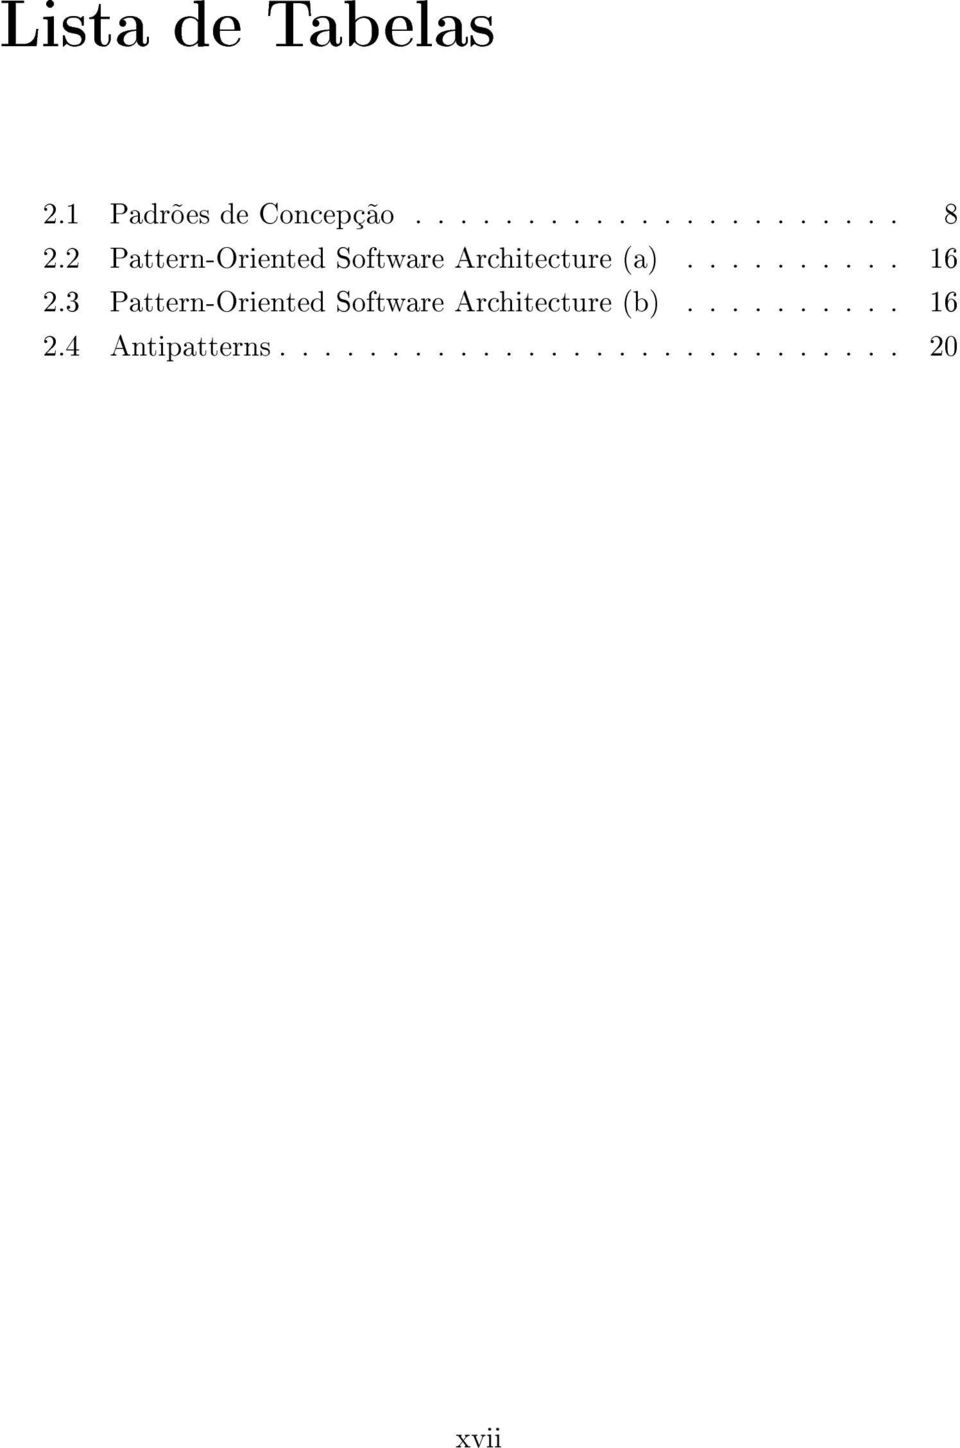 3 Pattern-Oriented Software Architecture (b).......... 16 2.